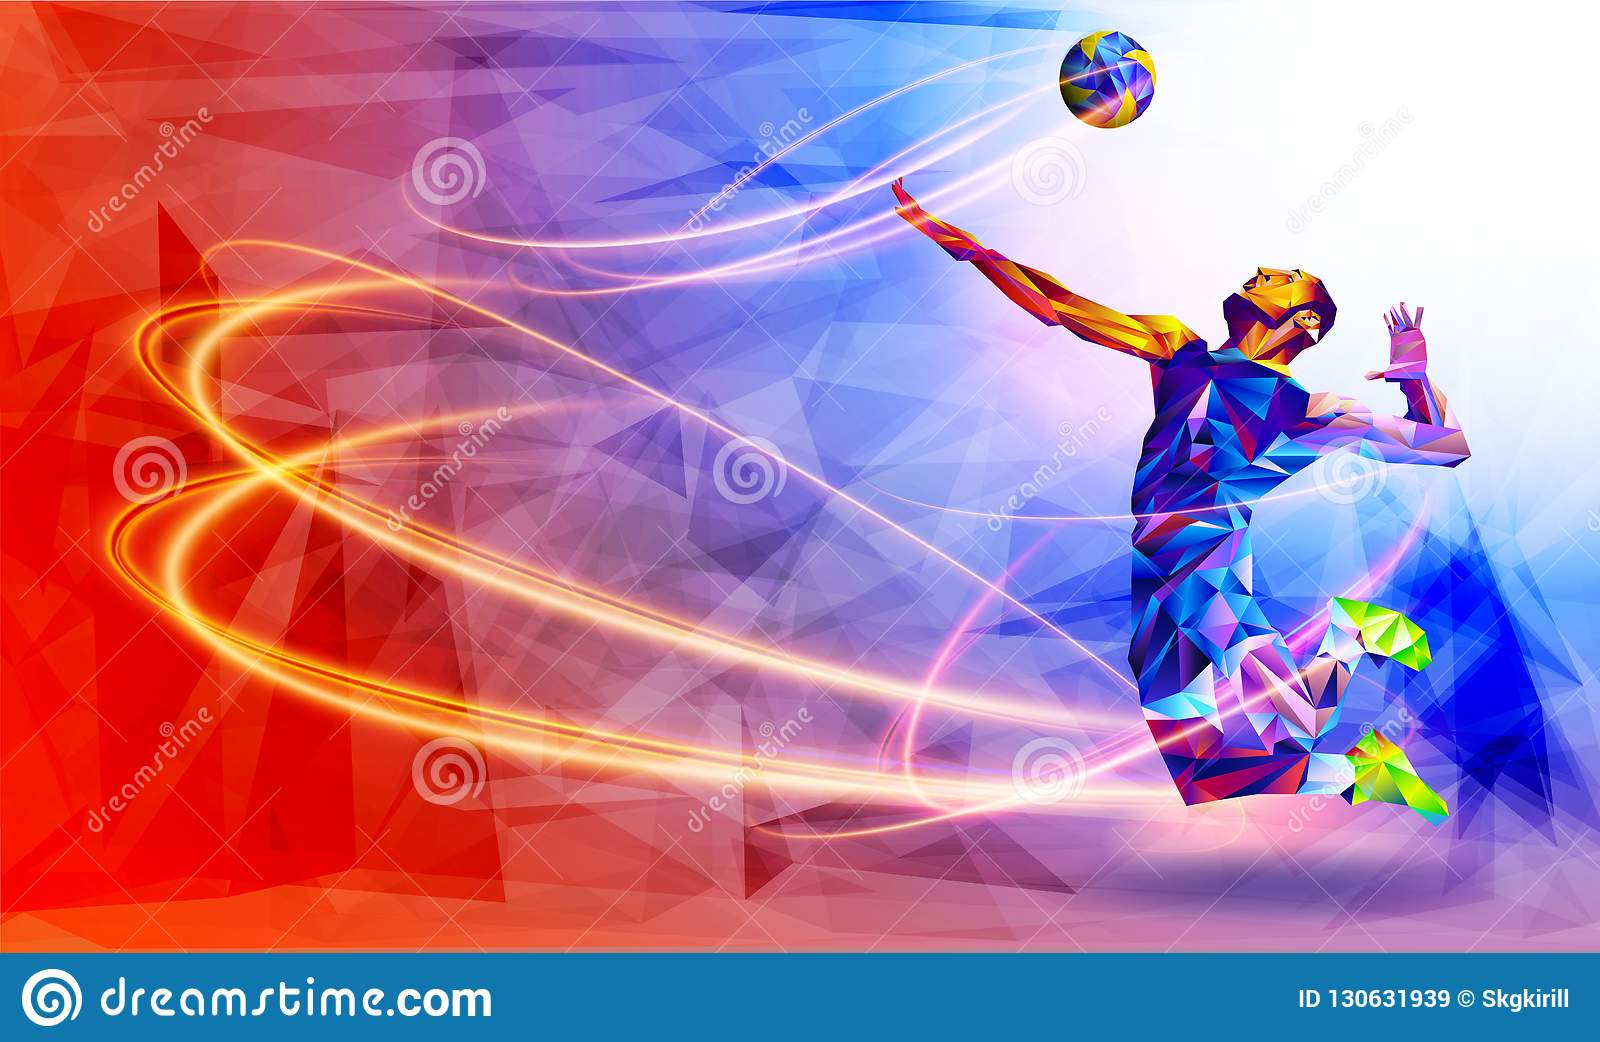 Volleyball Abstract Stock Photos Volleyball Abstract: Llustration Of Abstract Volleyball Player Silhouette In